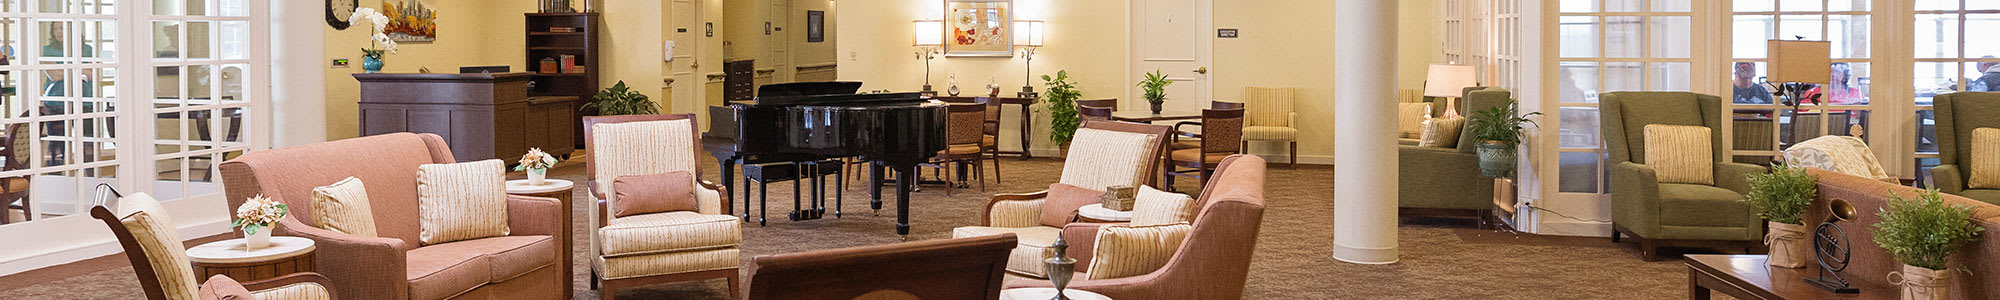 Living options at Broadmore Senior Living at Bristol